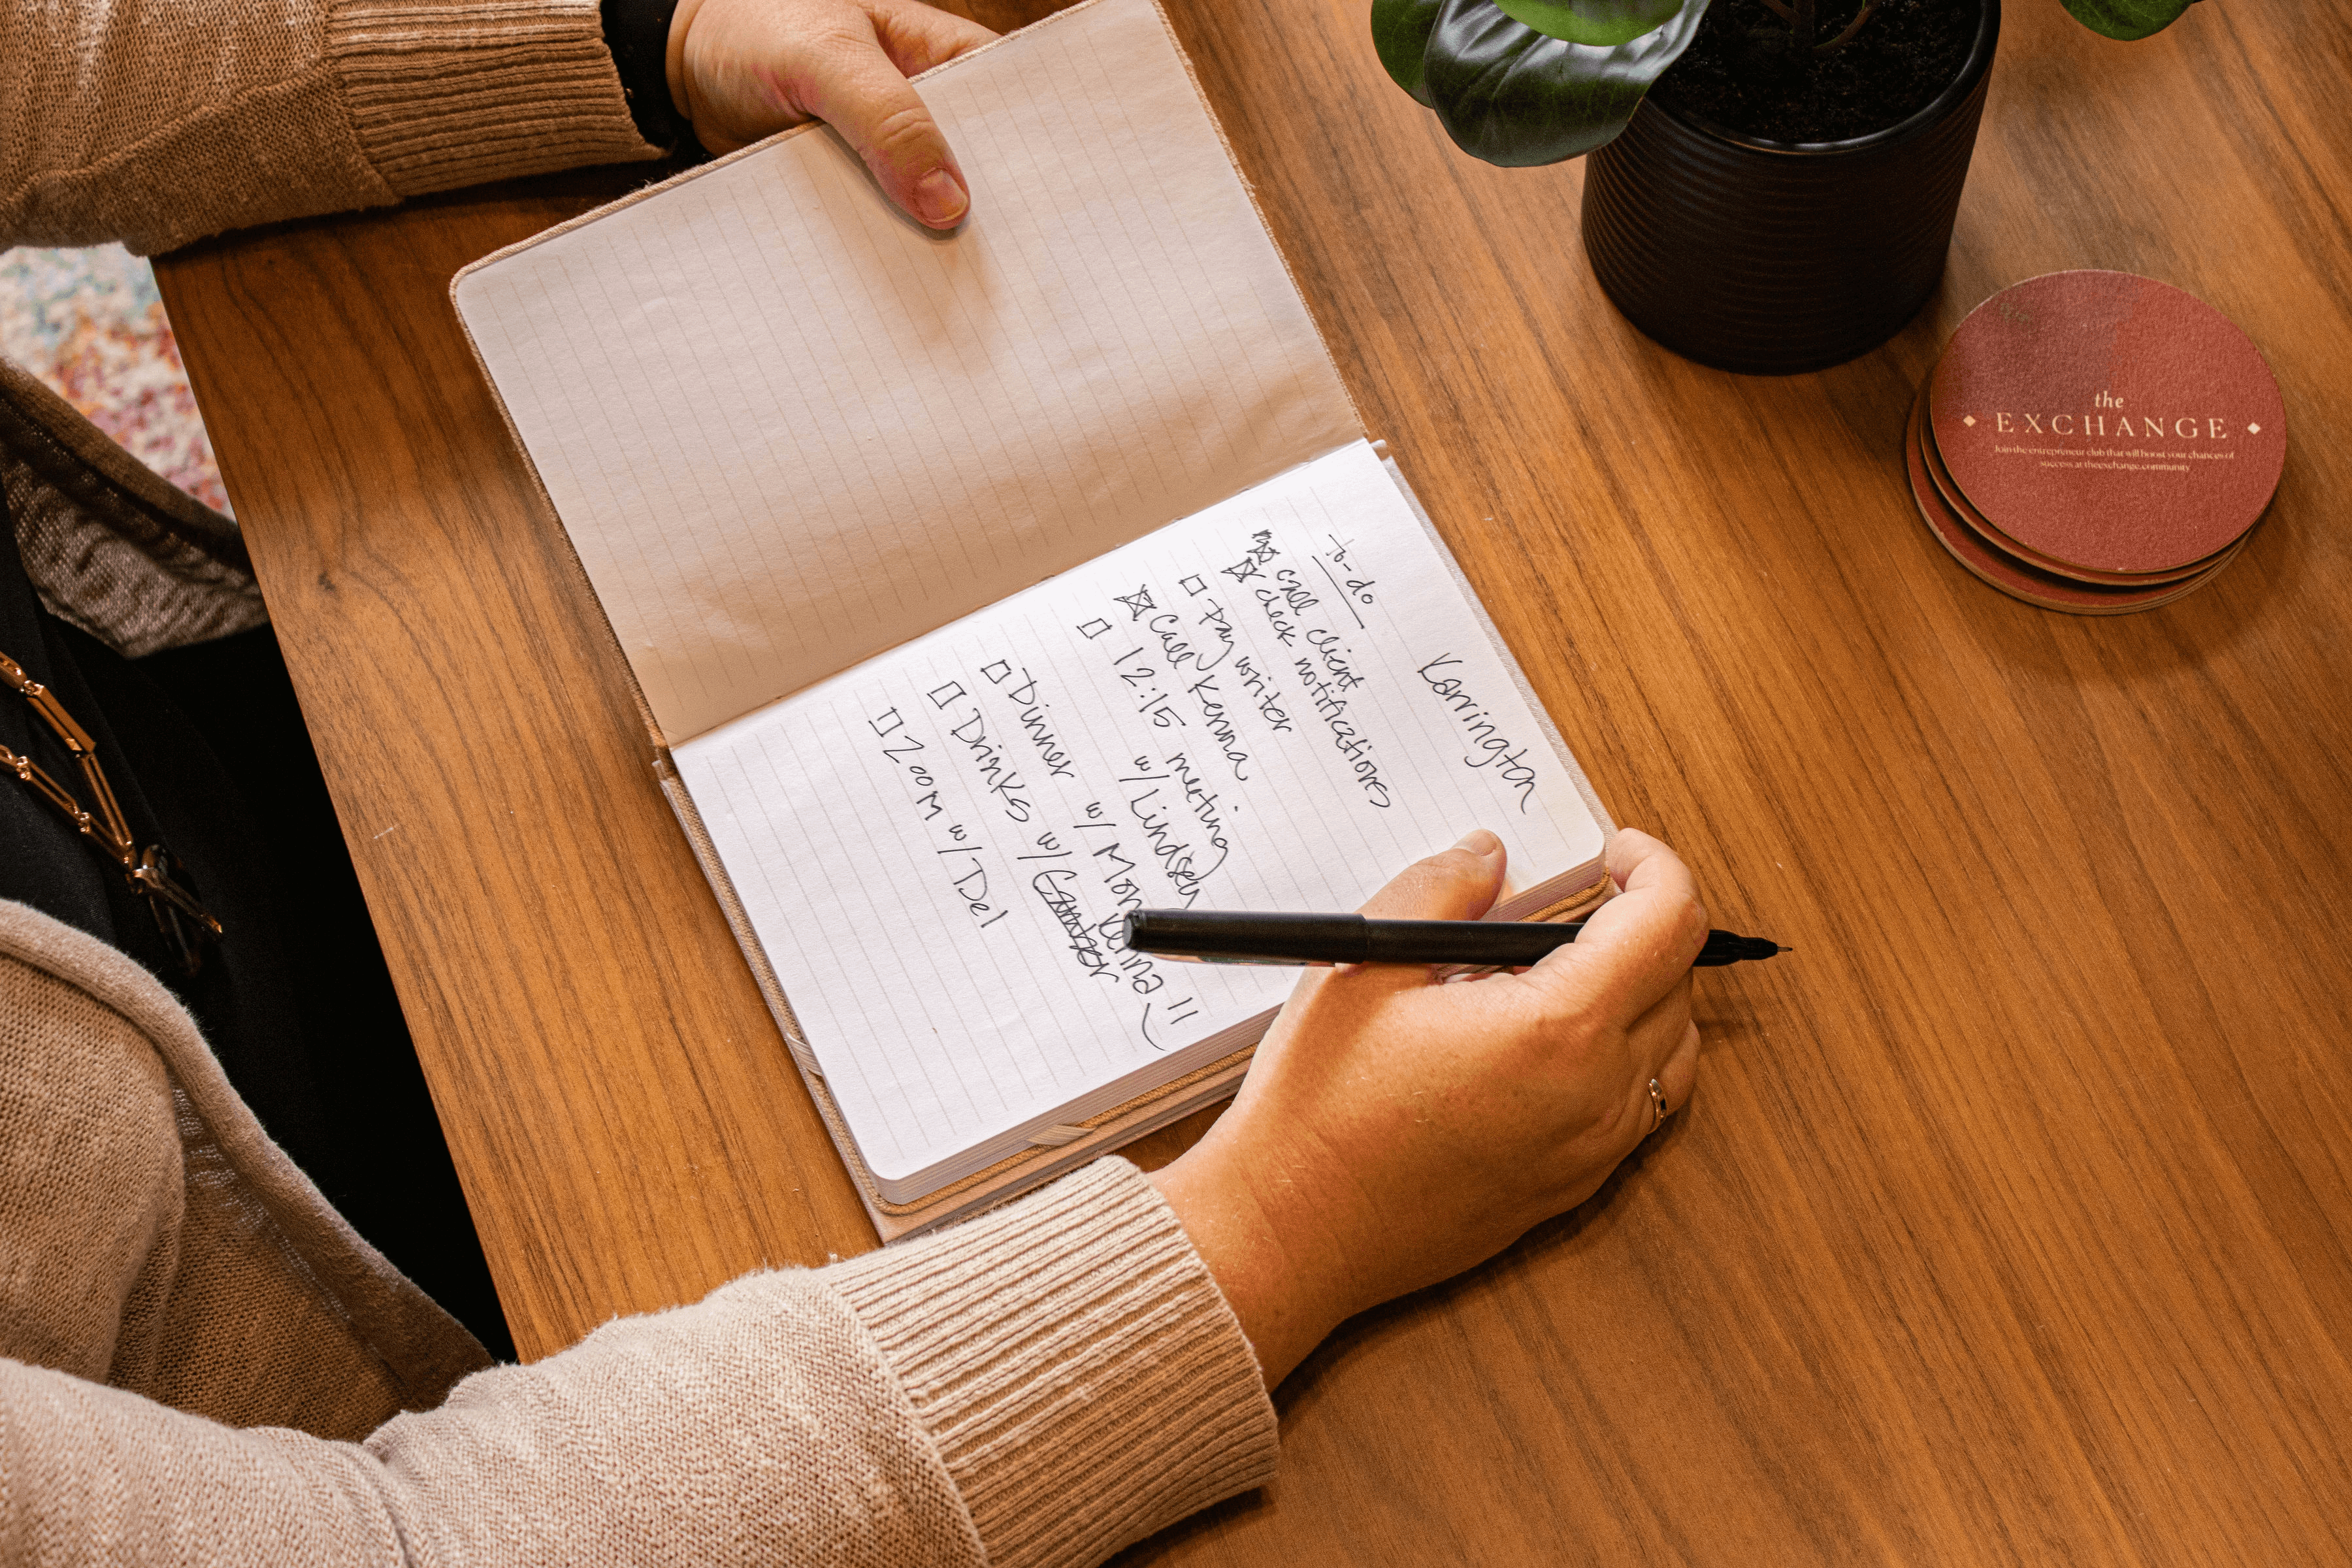 A white female is making a list in a notebook. Only her hands and arms are visible